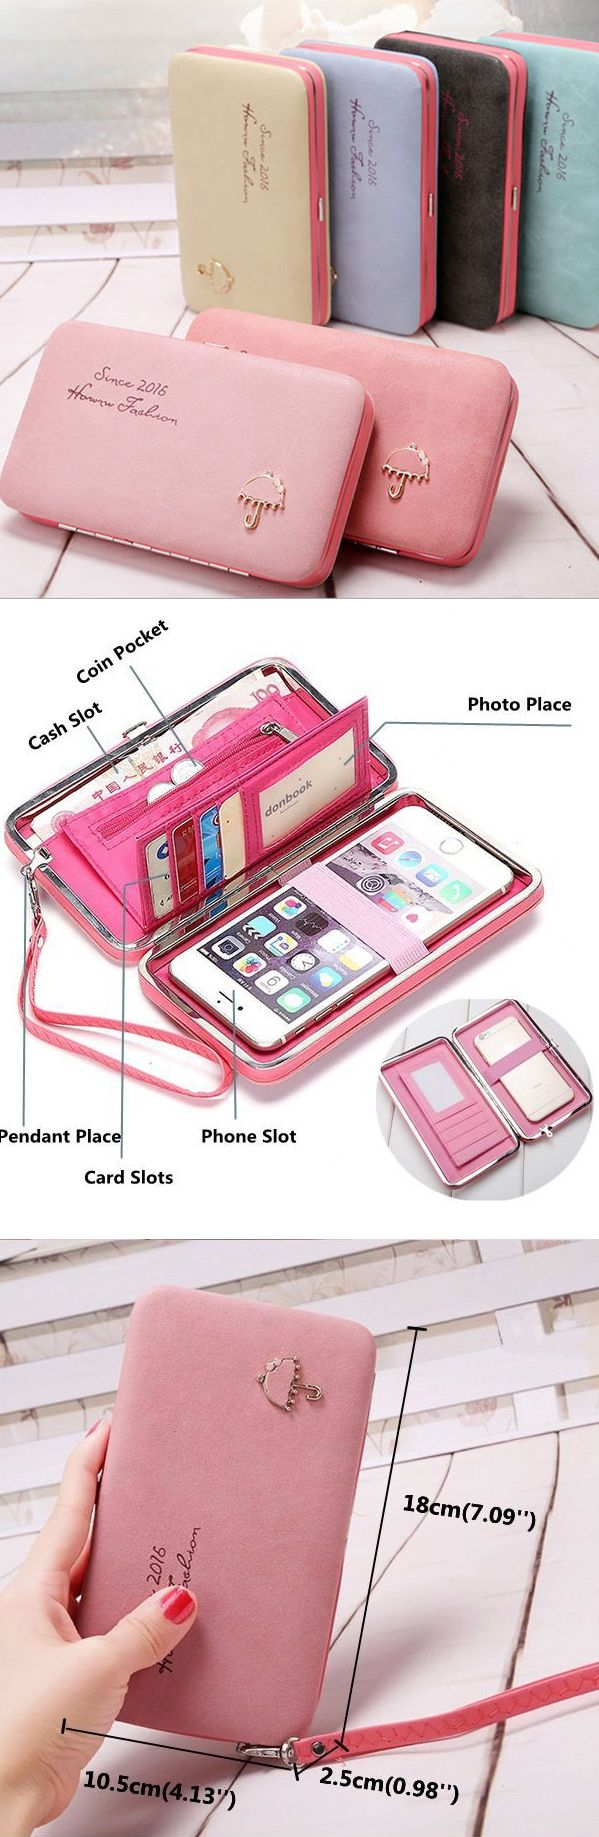 US$10.77 Universal Women Umbrella 5.5 Inch Phone Wallet Case Purse For Iphone,Xiaomi,Redmi,Samsung